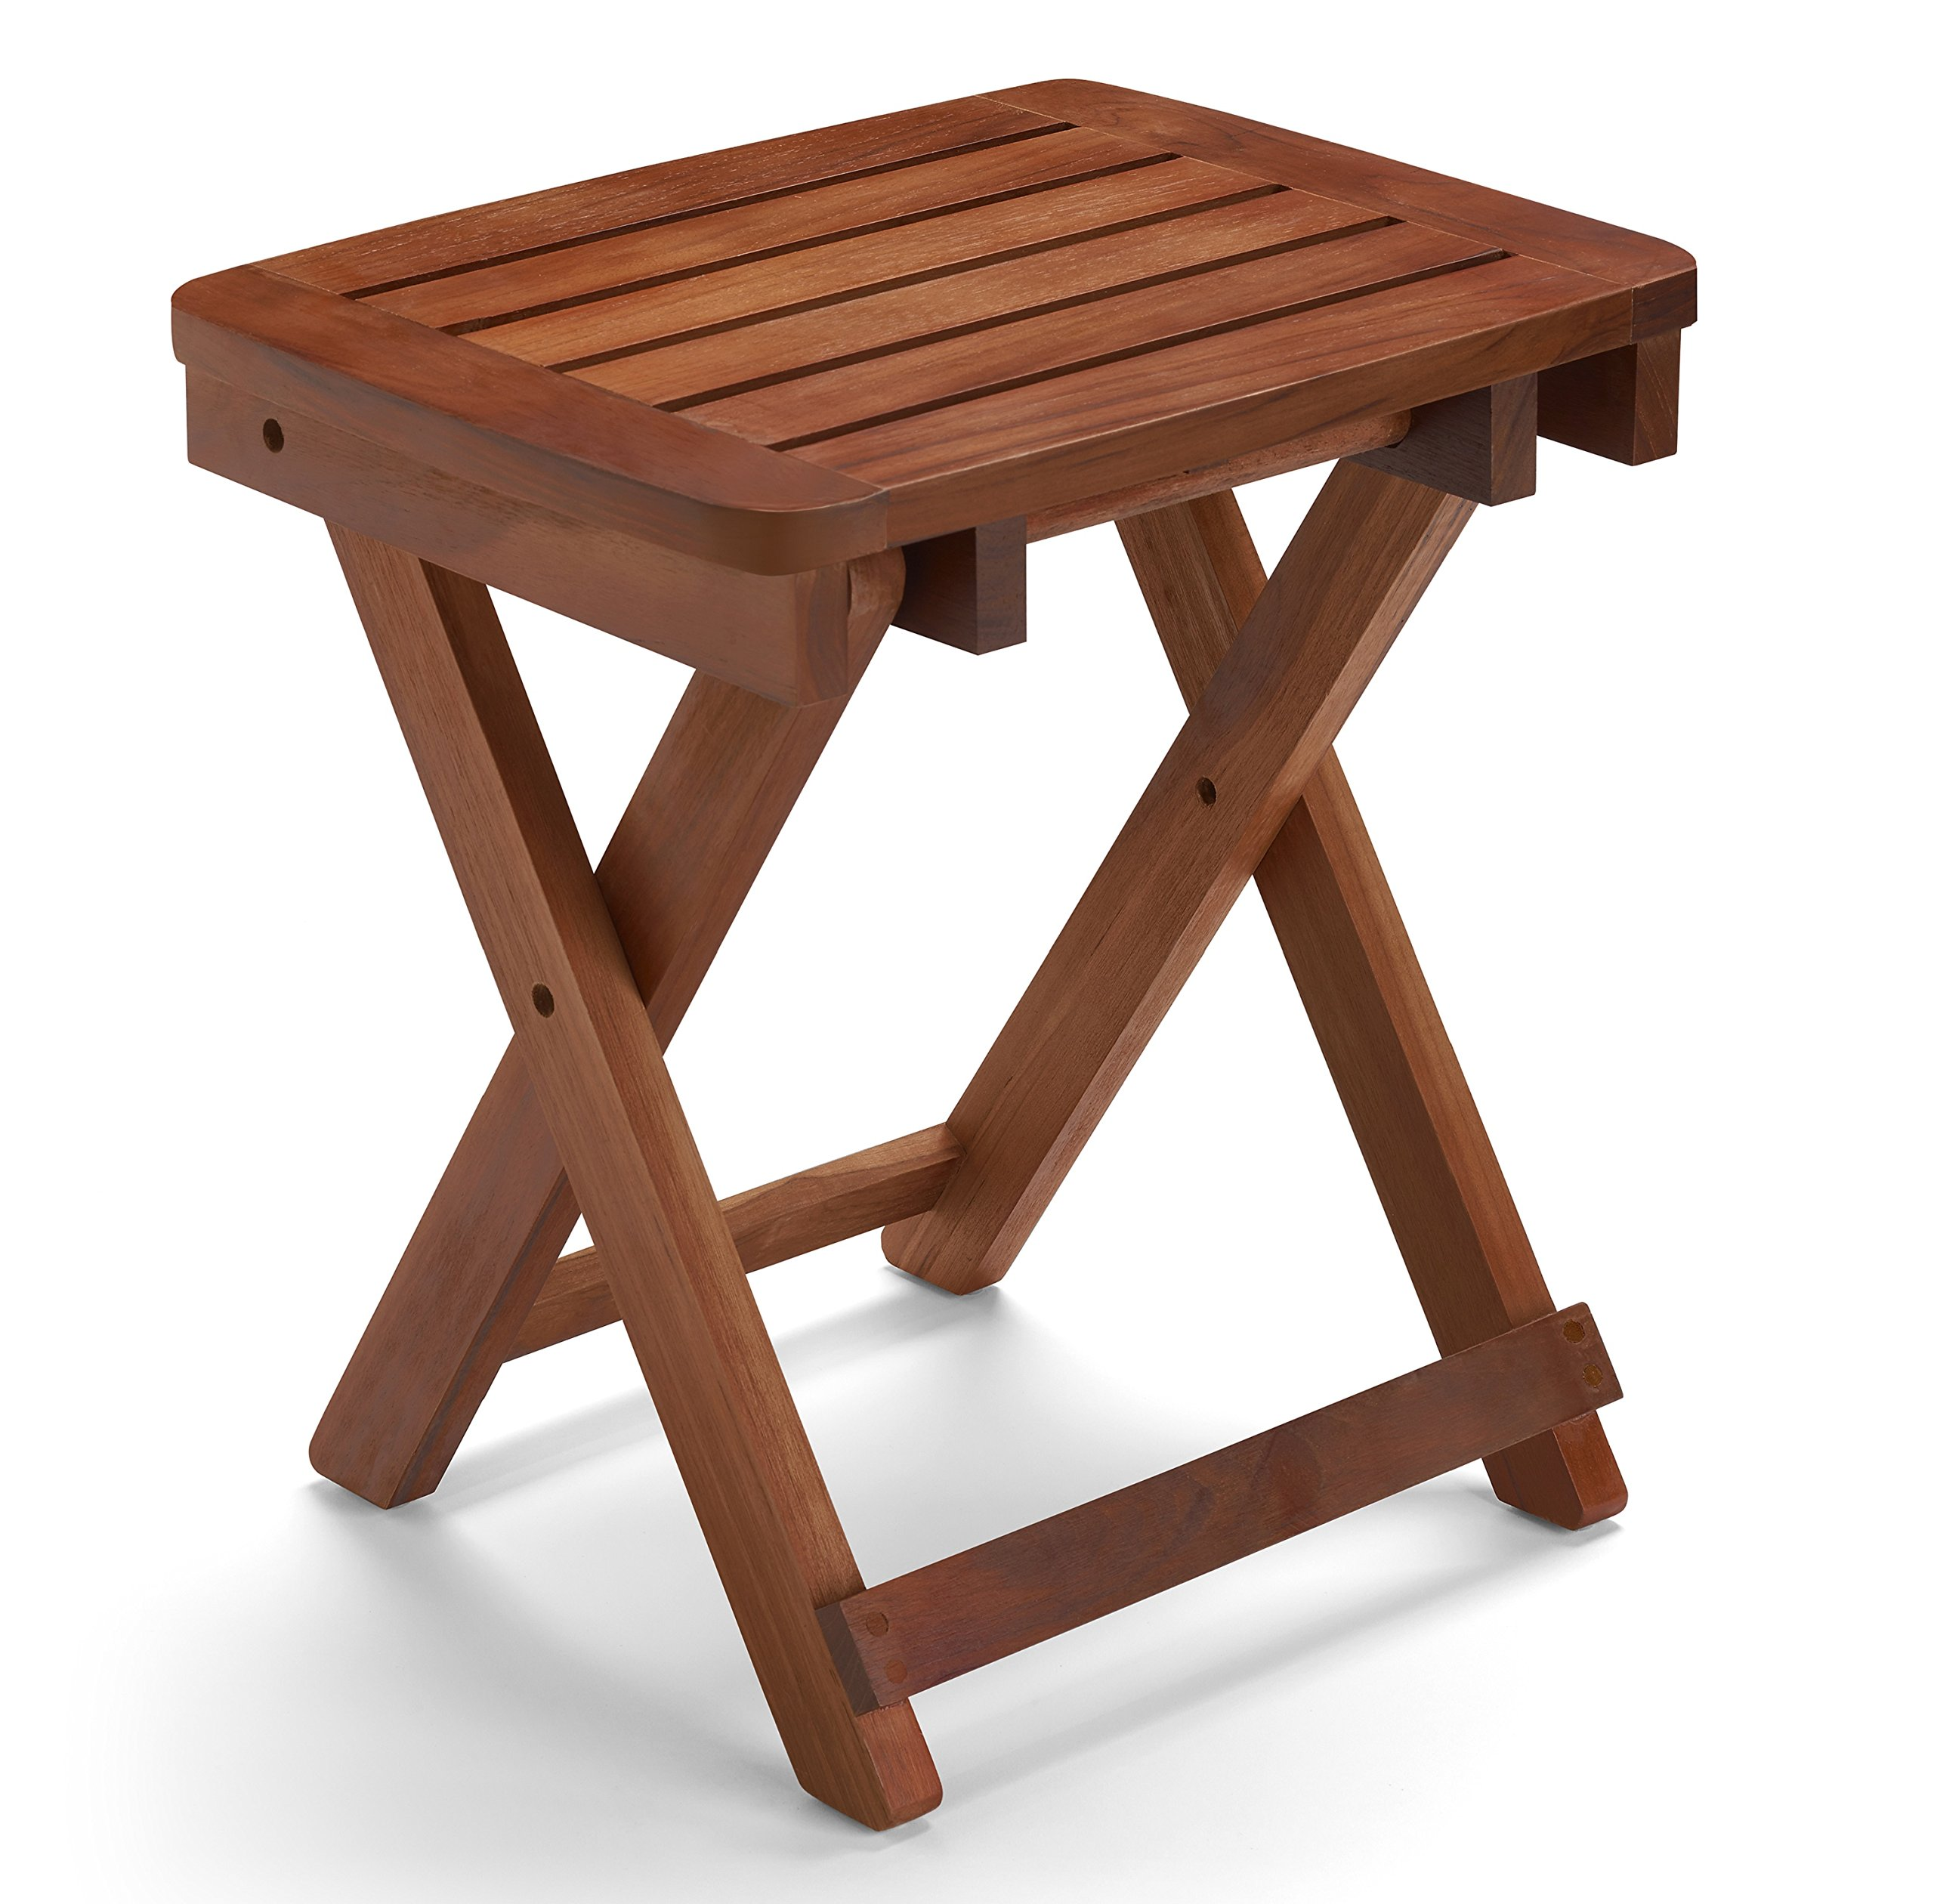 Conair Home Folding Teak Shower Seat